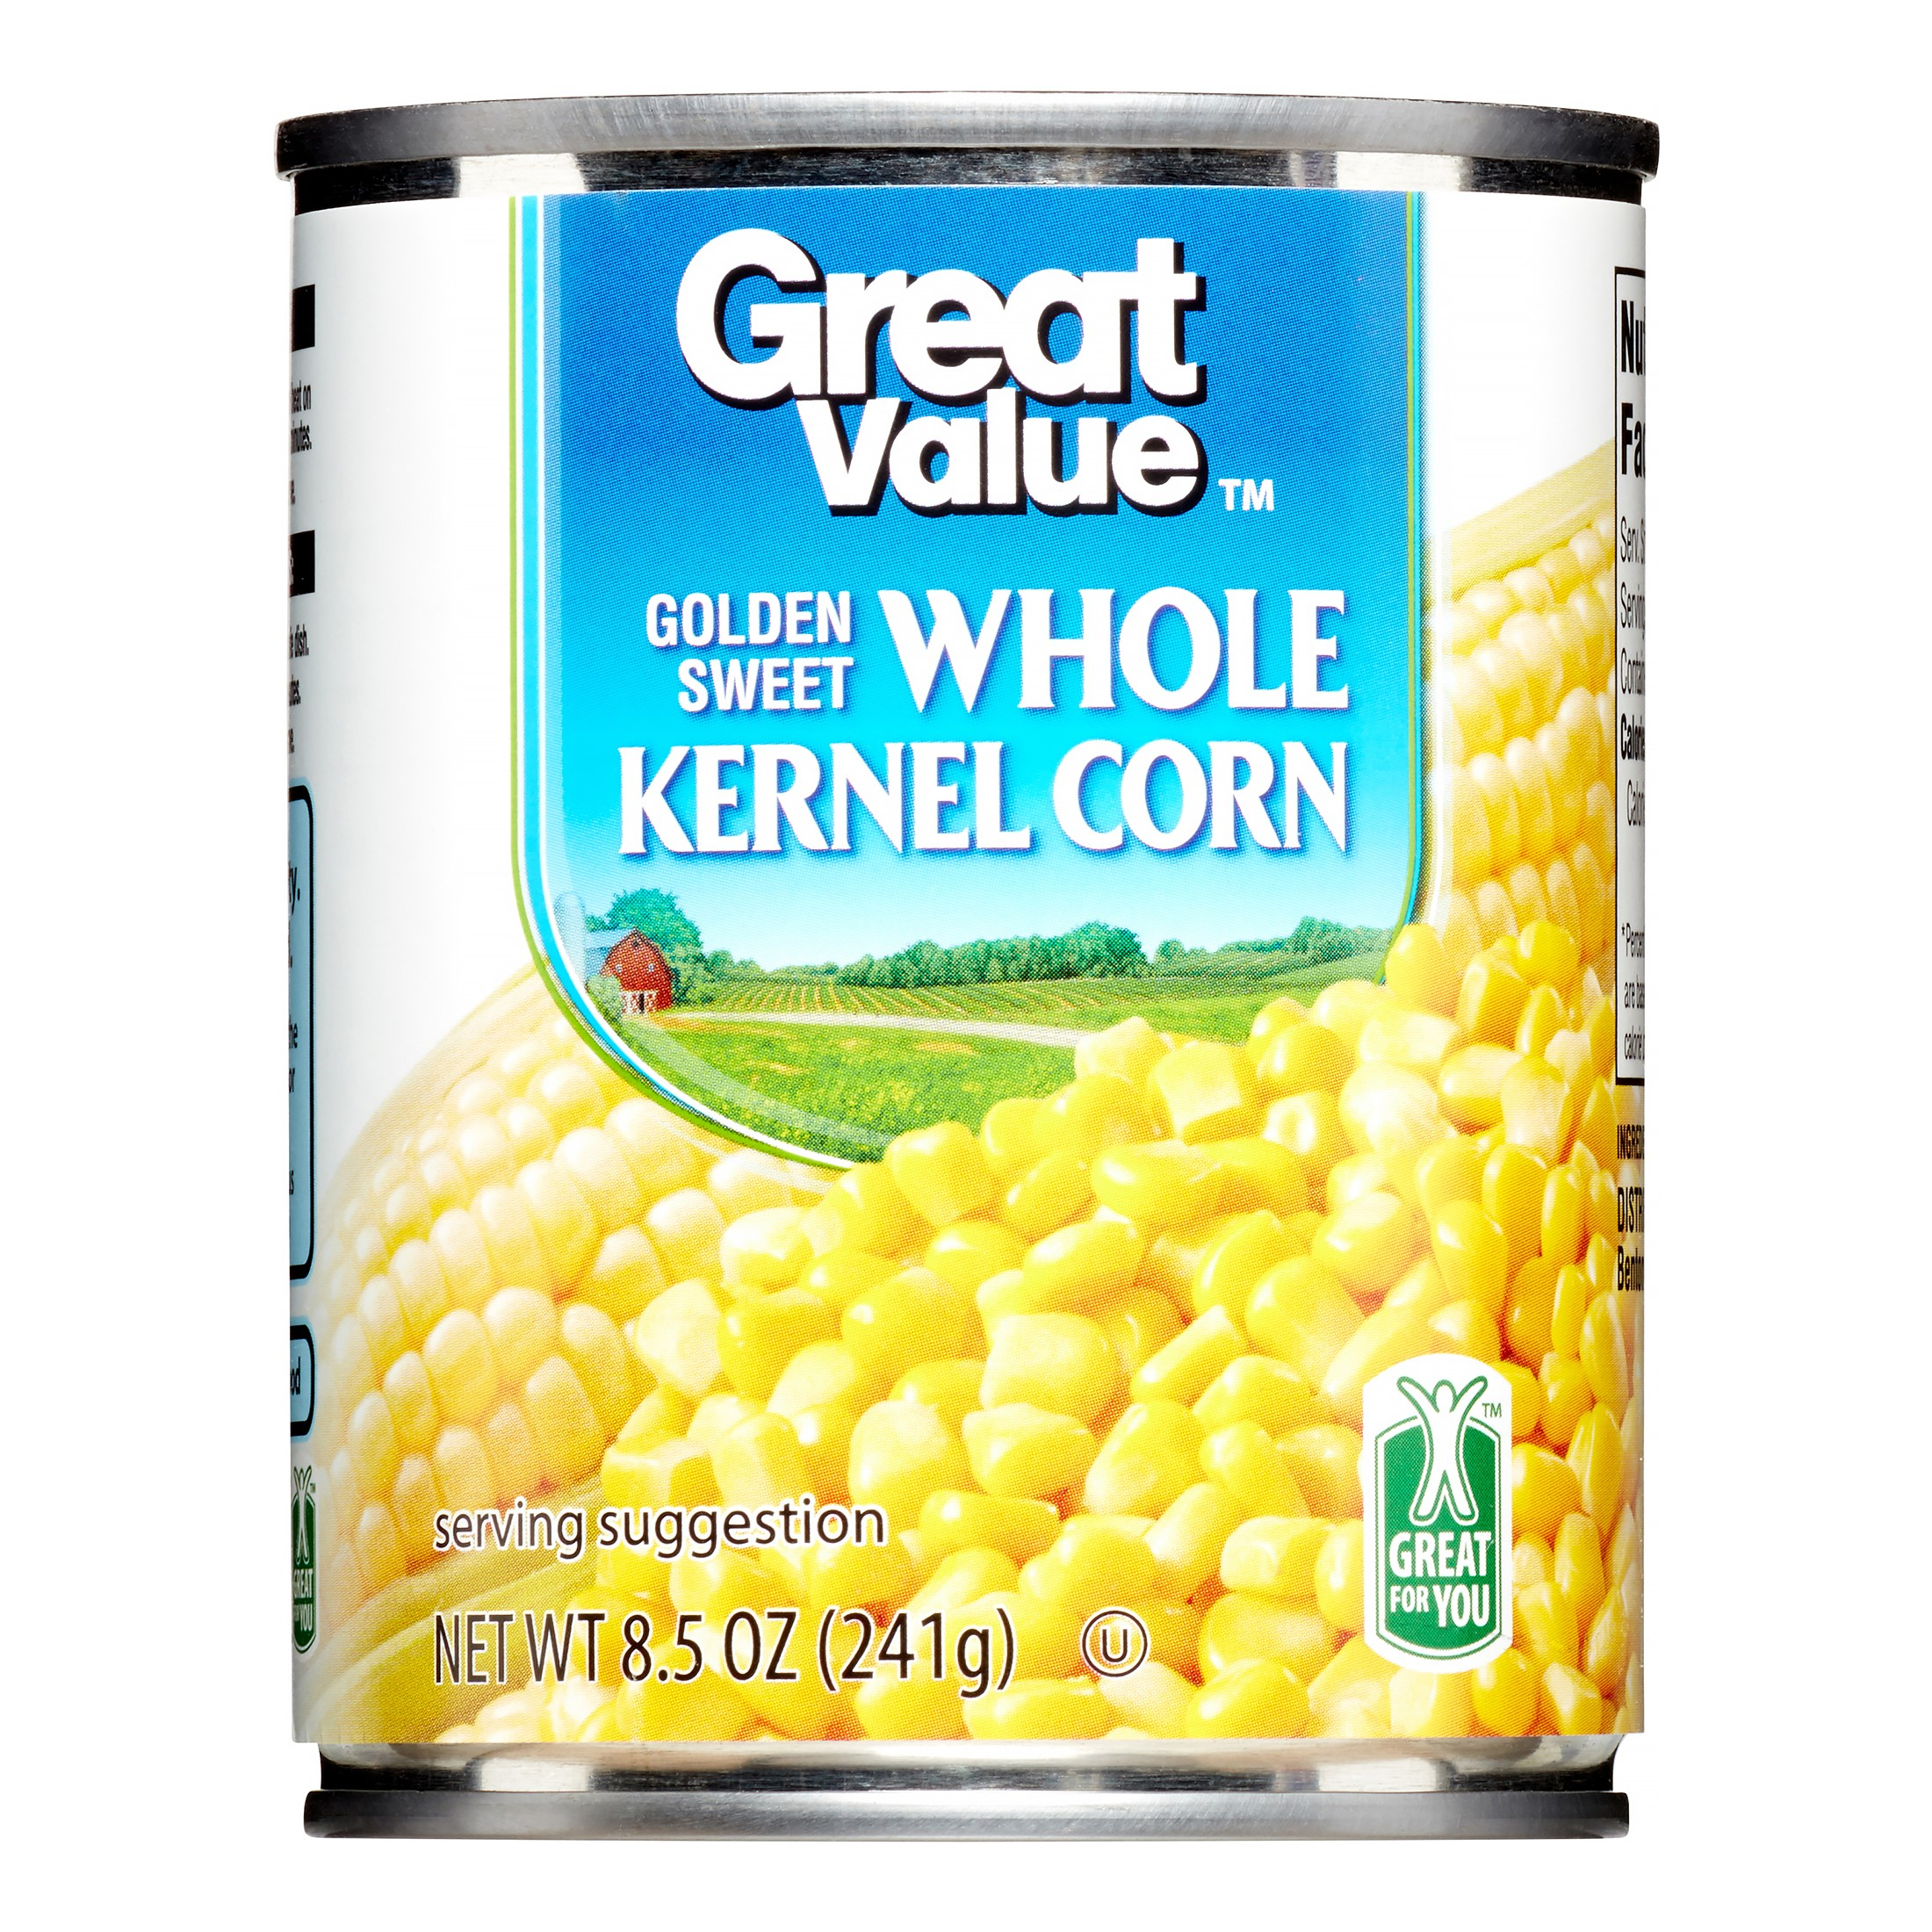 Great Value Golden Sweet Whole Kernel Corn, 8.5 oz